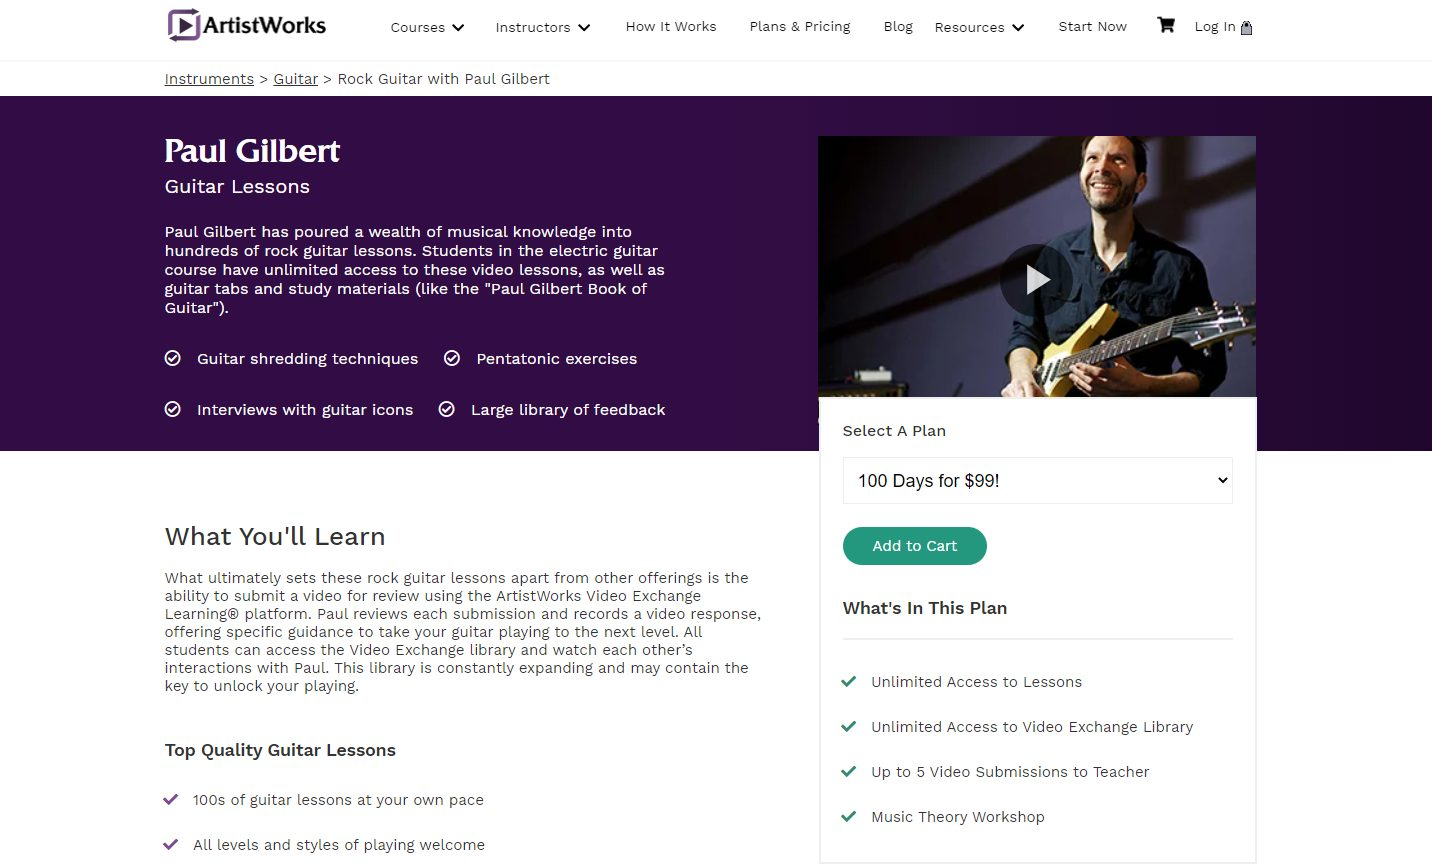 ArtistWorks Paul Gilbert Rock Course Home Page - February 2021